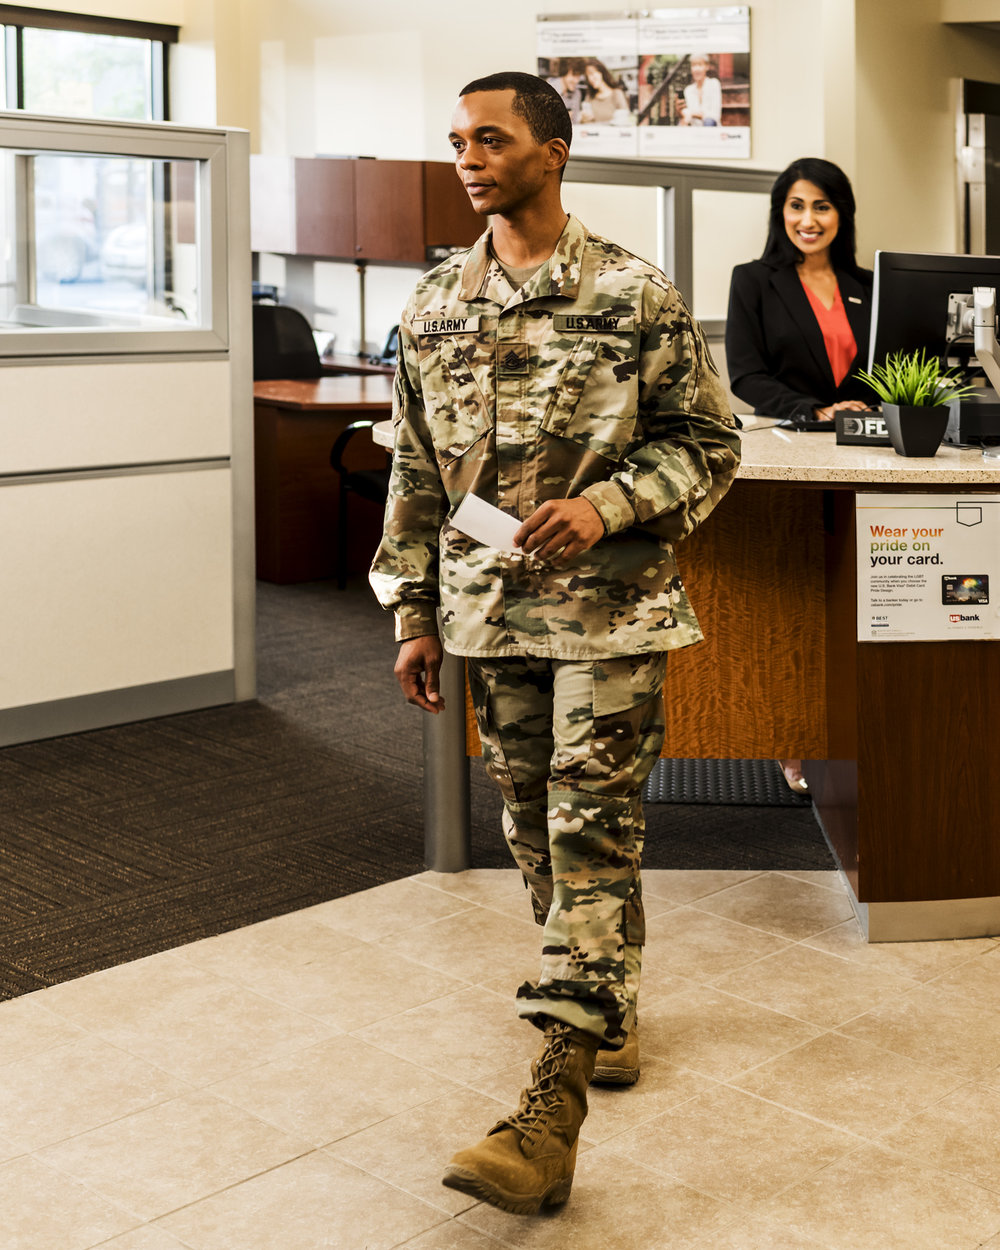 20180612_USBank_BankBranch_Military_169.jpg